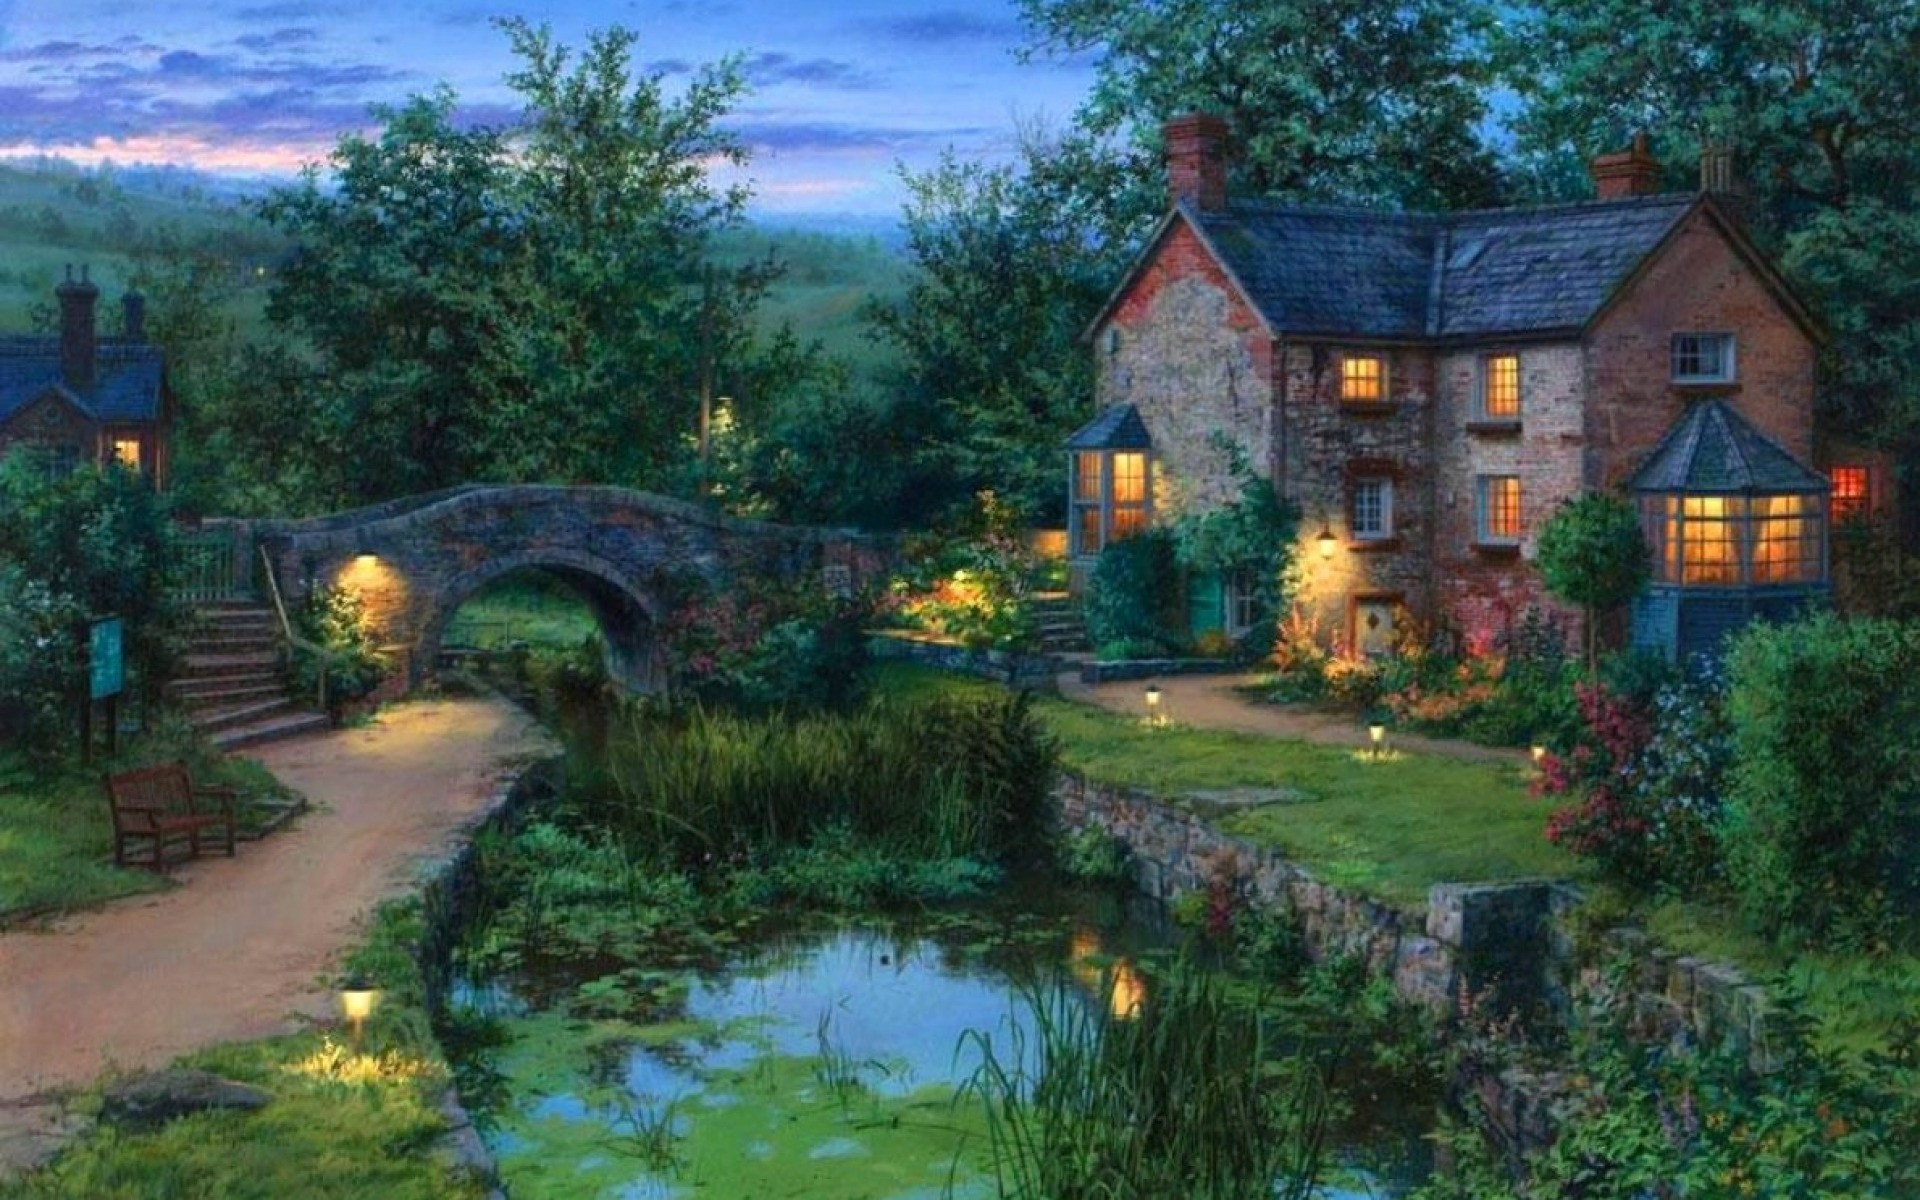 1920x1200 Image: Cottage Bridge Pond Garden Dim wallpapers and stock photos. Â«